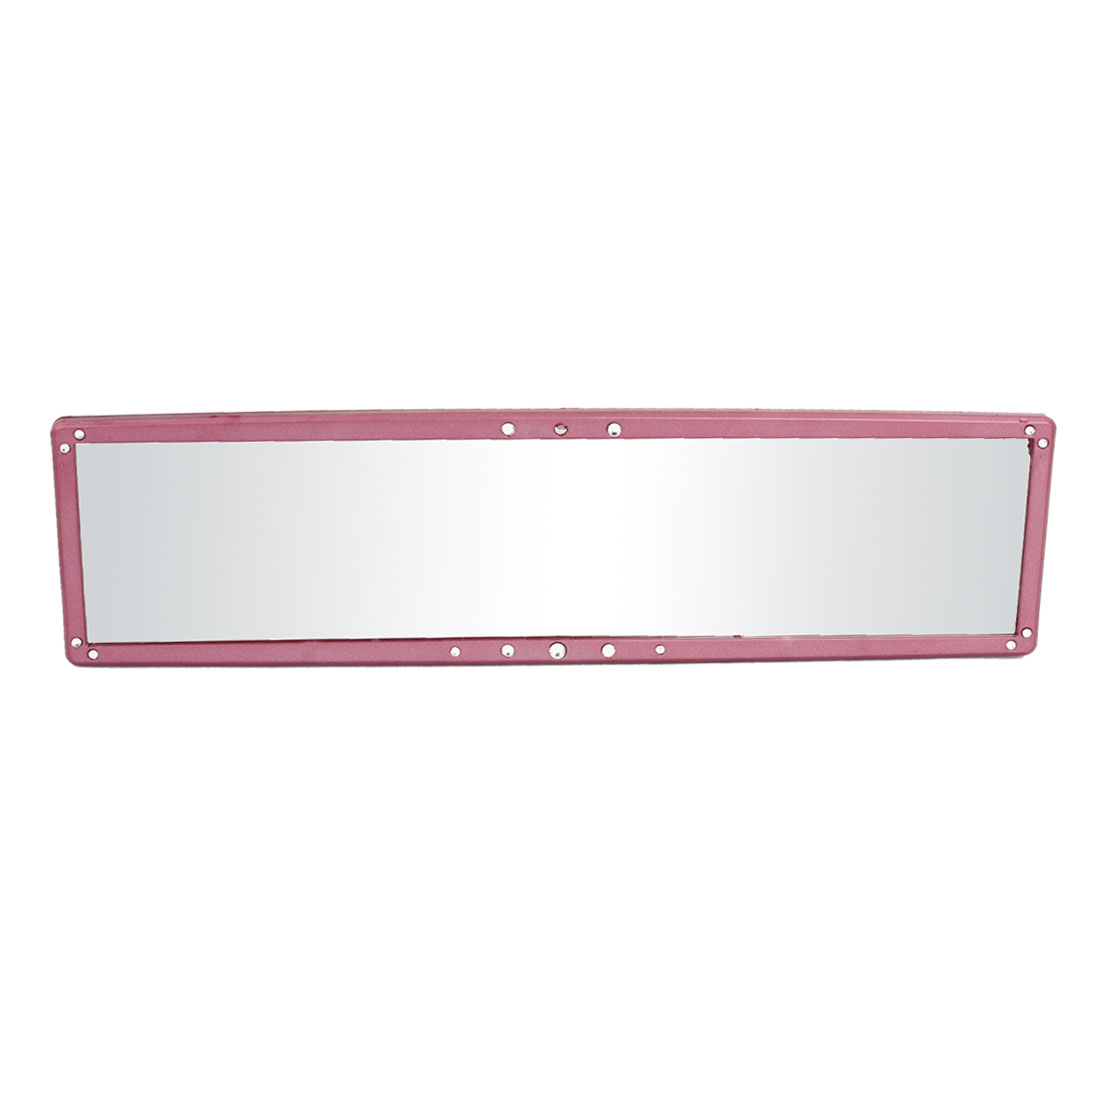 280mm Flat Pink Plastic Rhinestone Decoration Car Interior Rear View Mirror